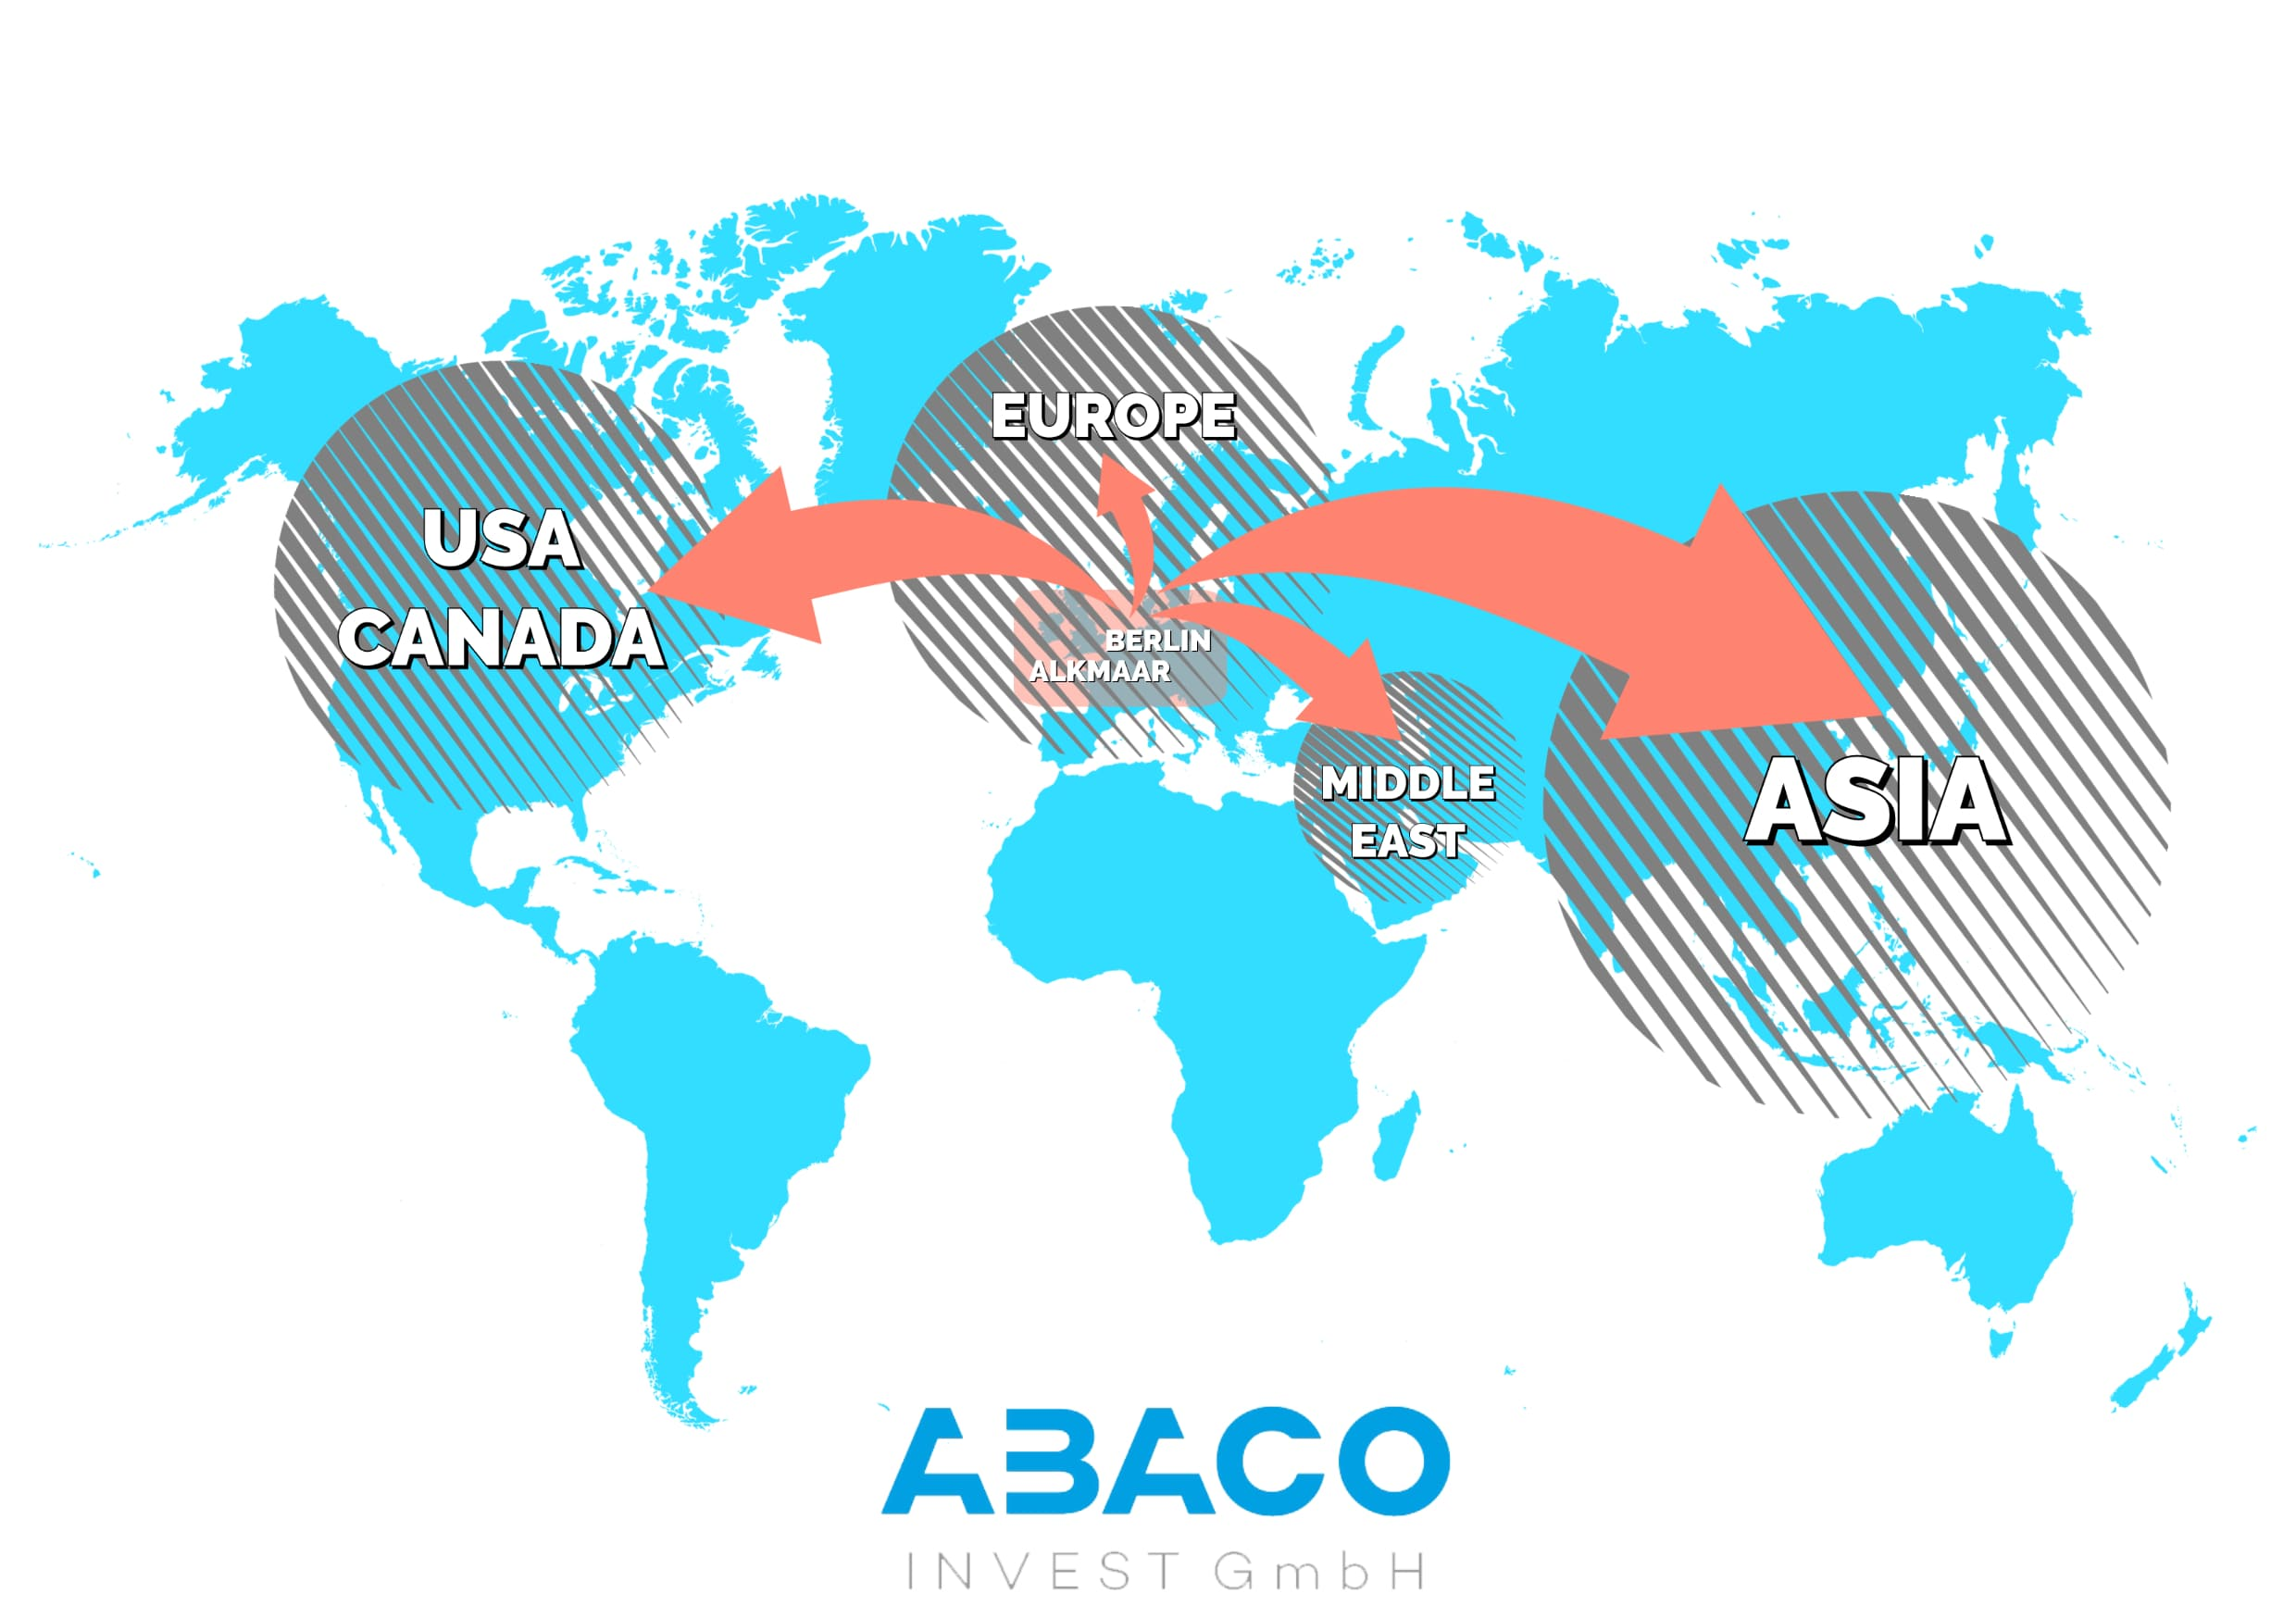 Abaco Invest GmbH. FMCG (Fast Moving Consuming Goods) and NON-FOOD products international trade